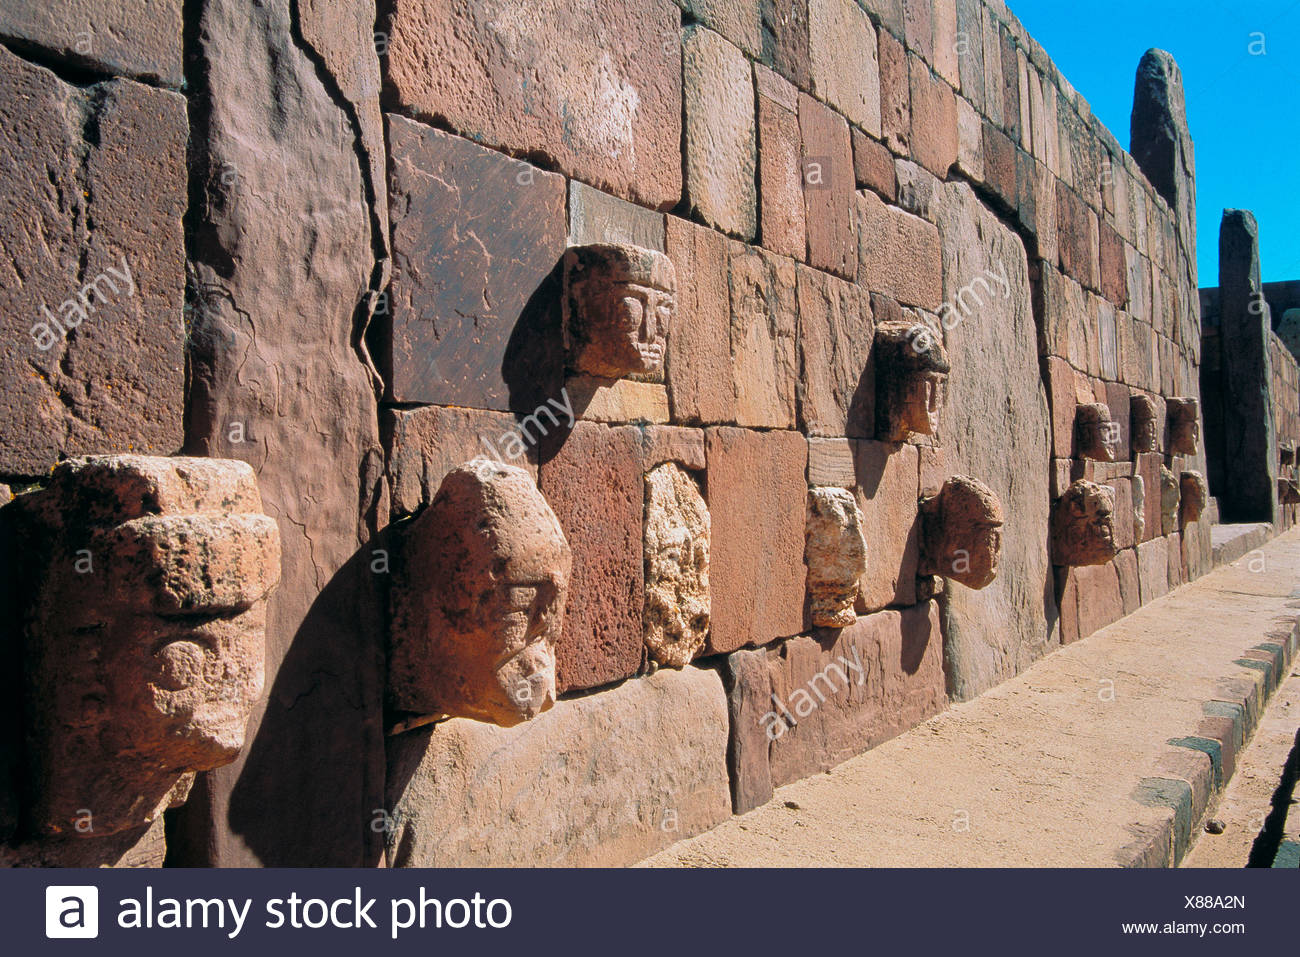 Bolivia South America in Titicacasee temple wall him faces heads Tiahuanaco culture - Stock Image